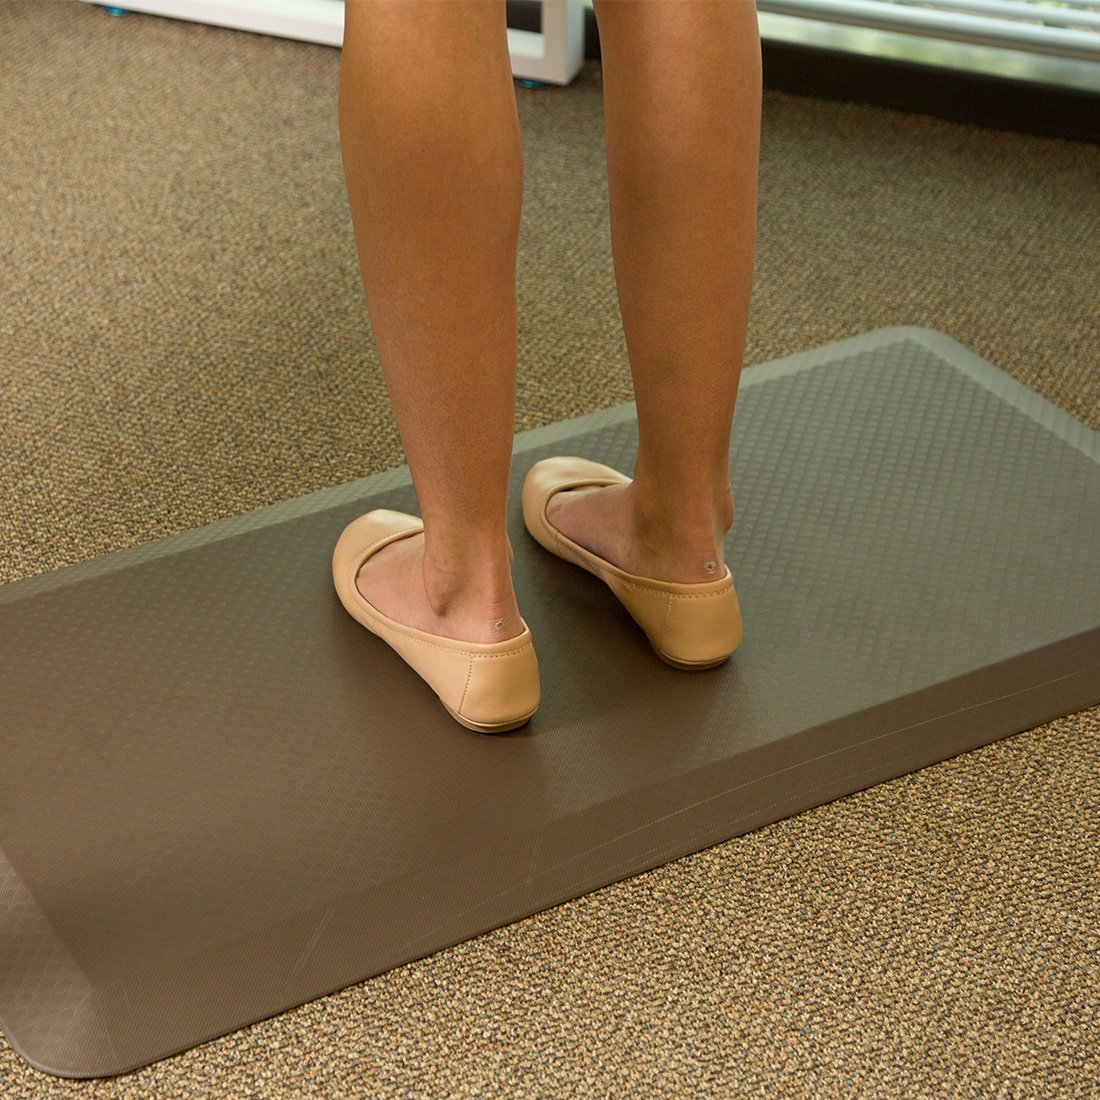 Clearance! Flexispot Anti-Fatigue Non-Slip Comfort Kitchen Floor Mat Standing Desk Mat (32 x 20 Brown) by FLEXISPOT